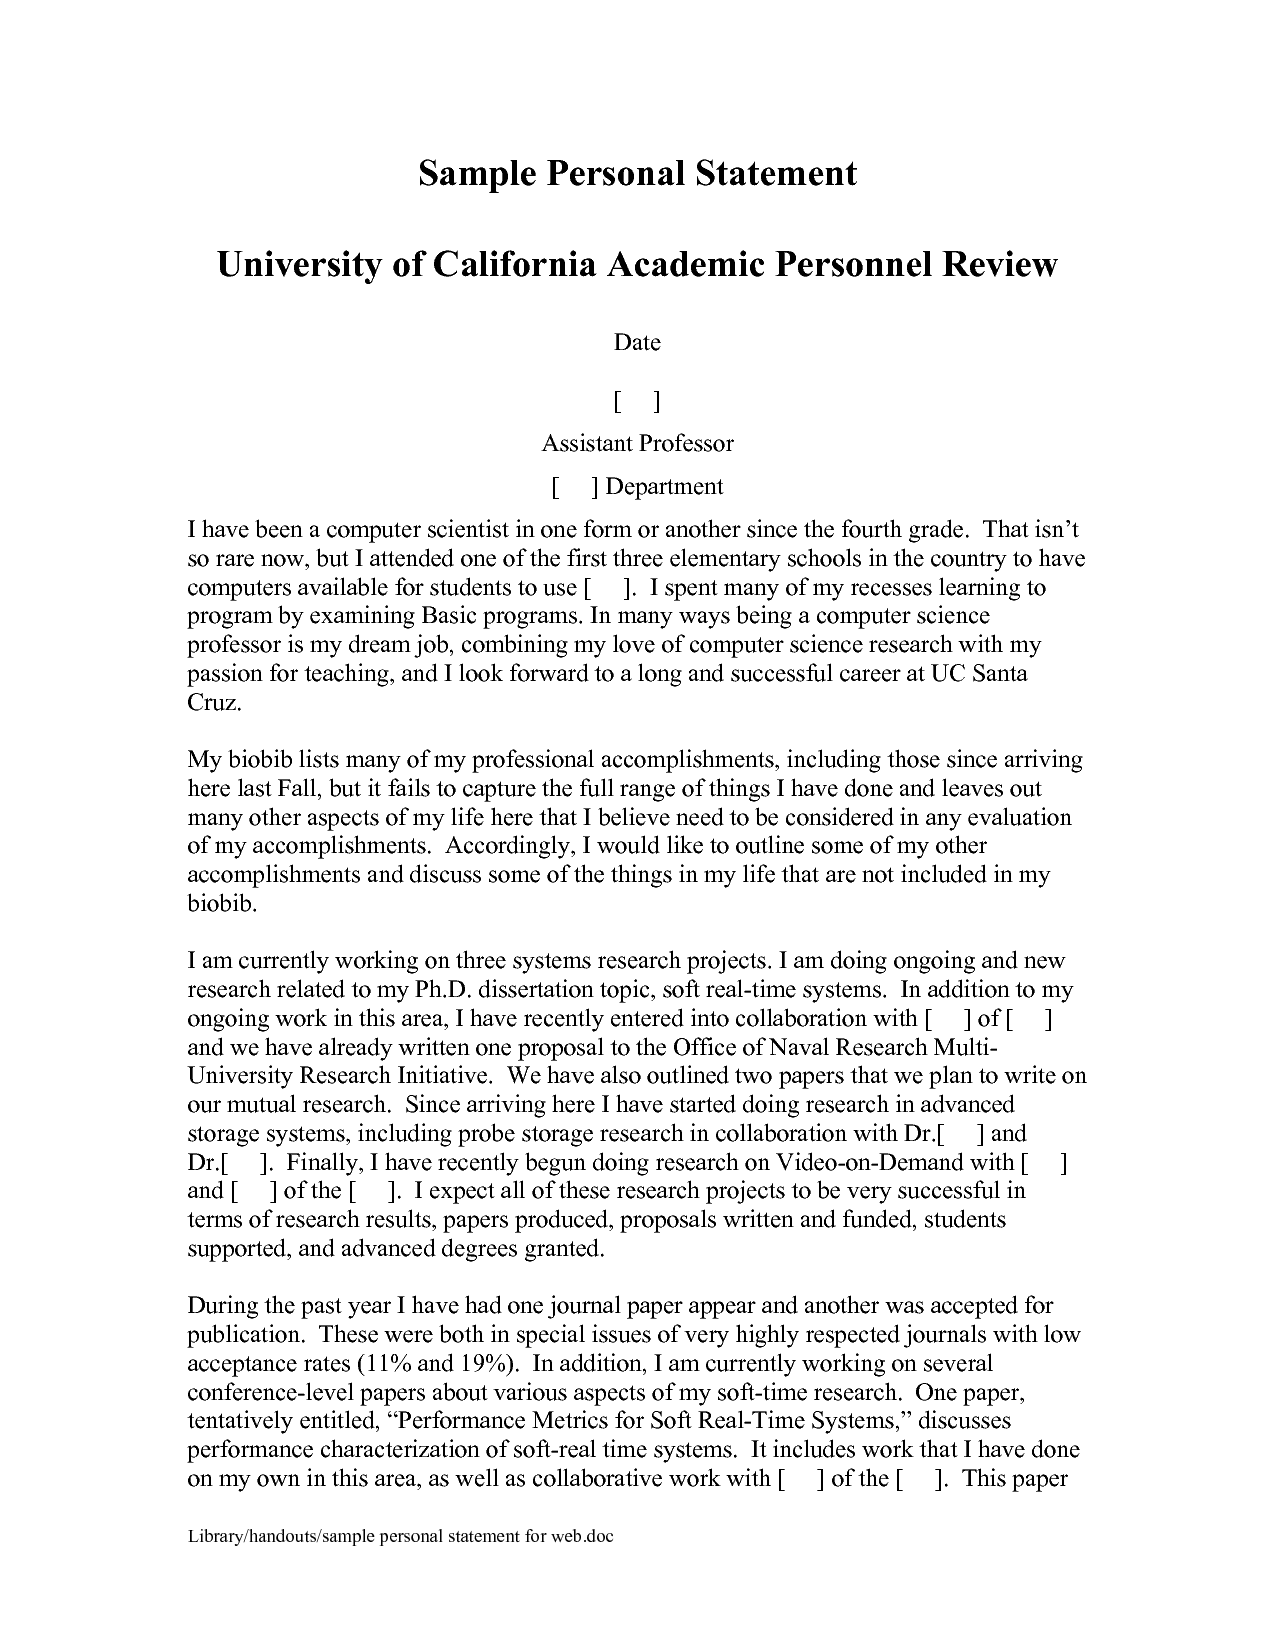 Personal statement for grad school   Alerion Writing Service